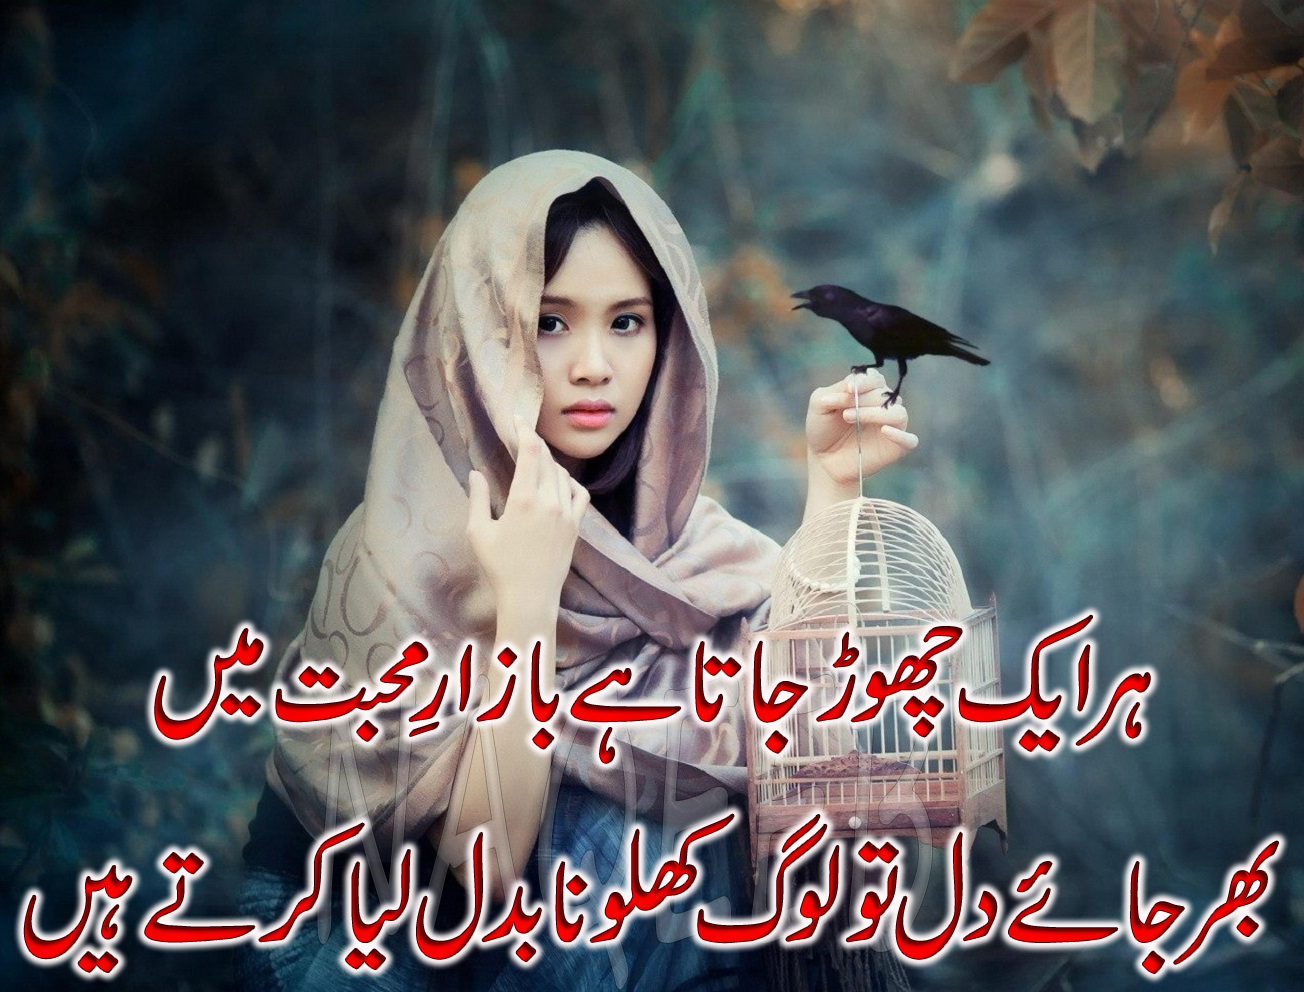 sad urdu poetry, latest sad poetry pics, heart touching sad poetry, latest 2017 sad poetry pics, sad poety with sad girls pics design by naqeeb, dard sad poetry, sad poetry in urdu.